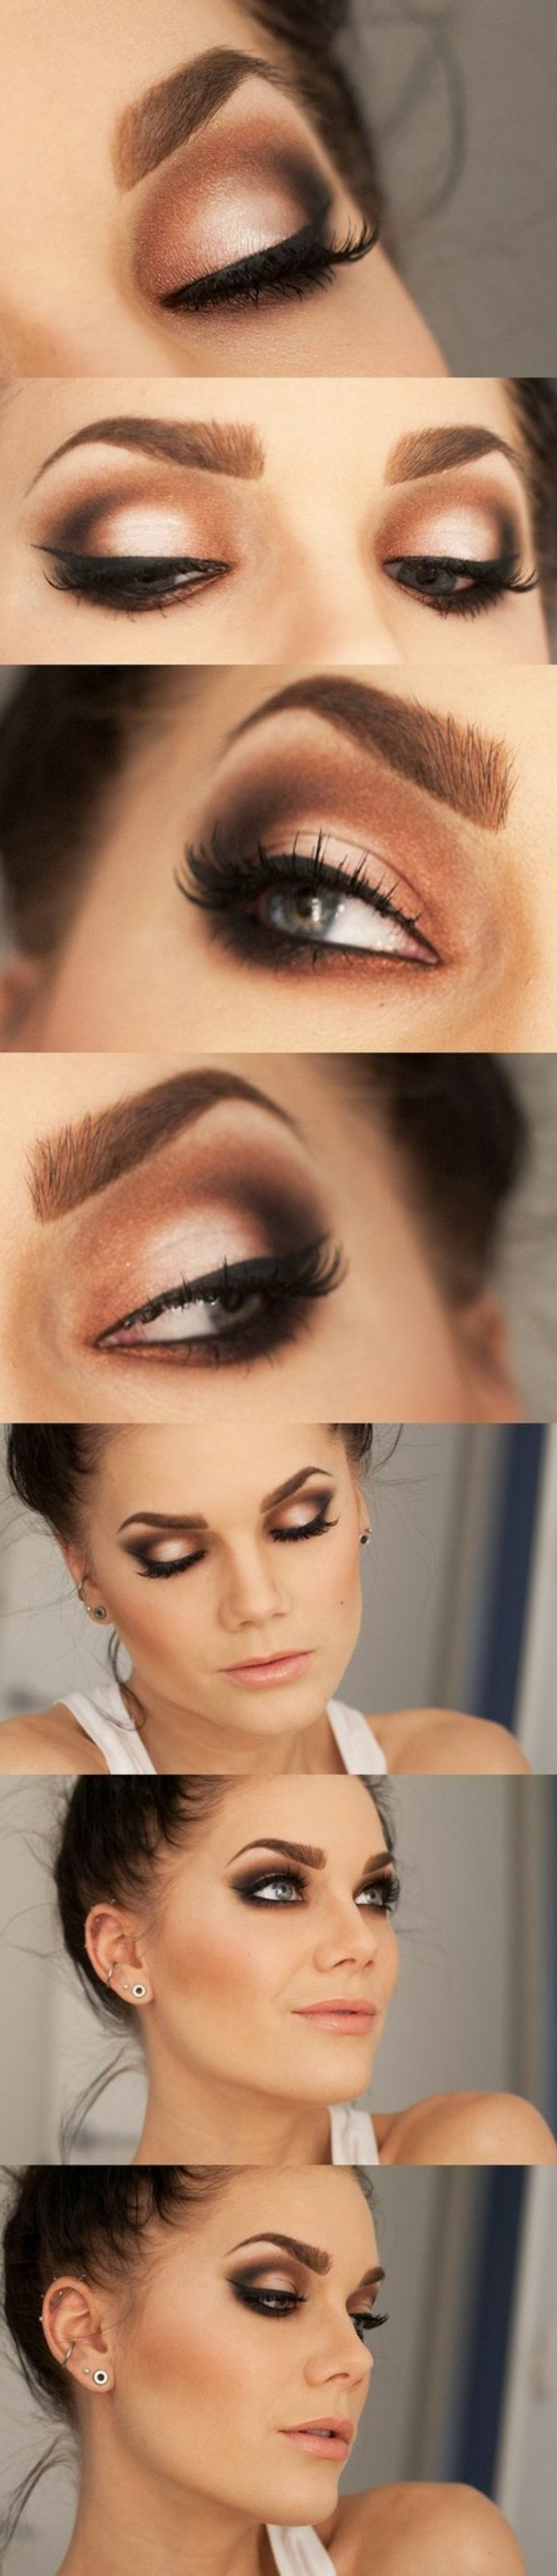 tutoriel-maquillage-comment-se-maquiller-proprement